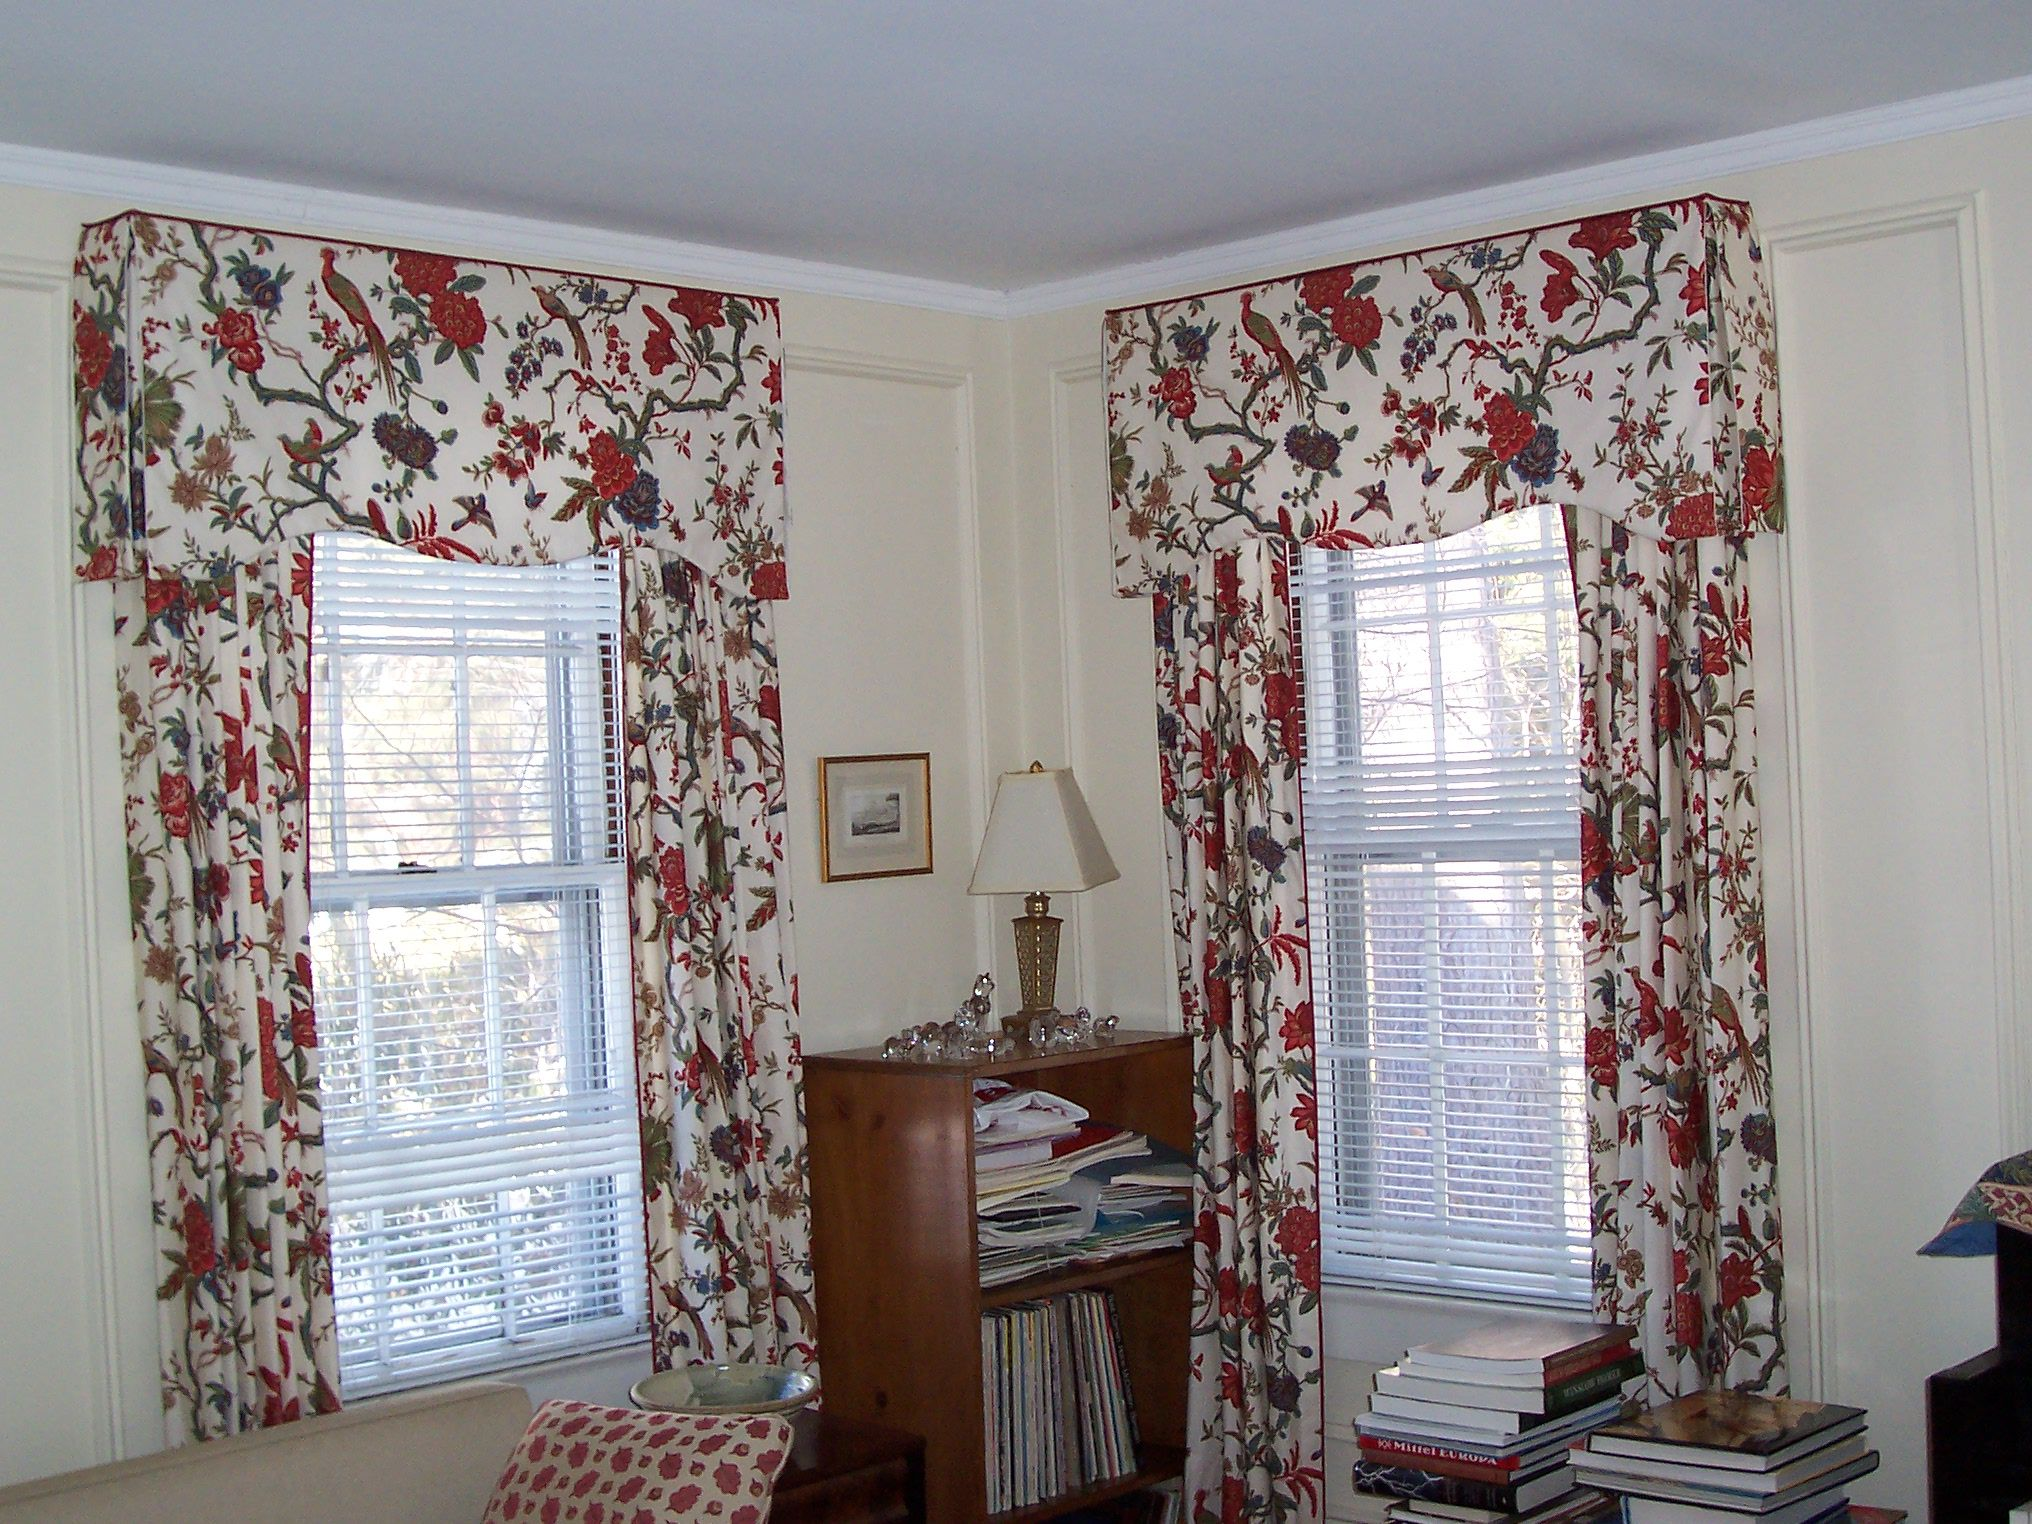 Back tab curtains on traverse rod - Pinch Pleat Drapes Trimmed In Red Band On A Traverse Rod Hidden By Soft Cornice With